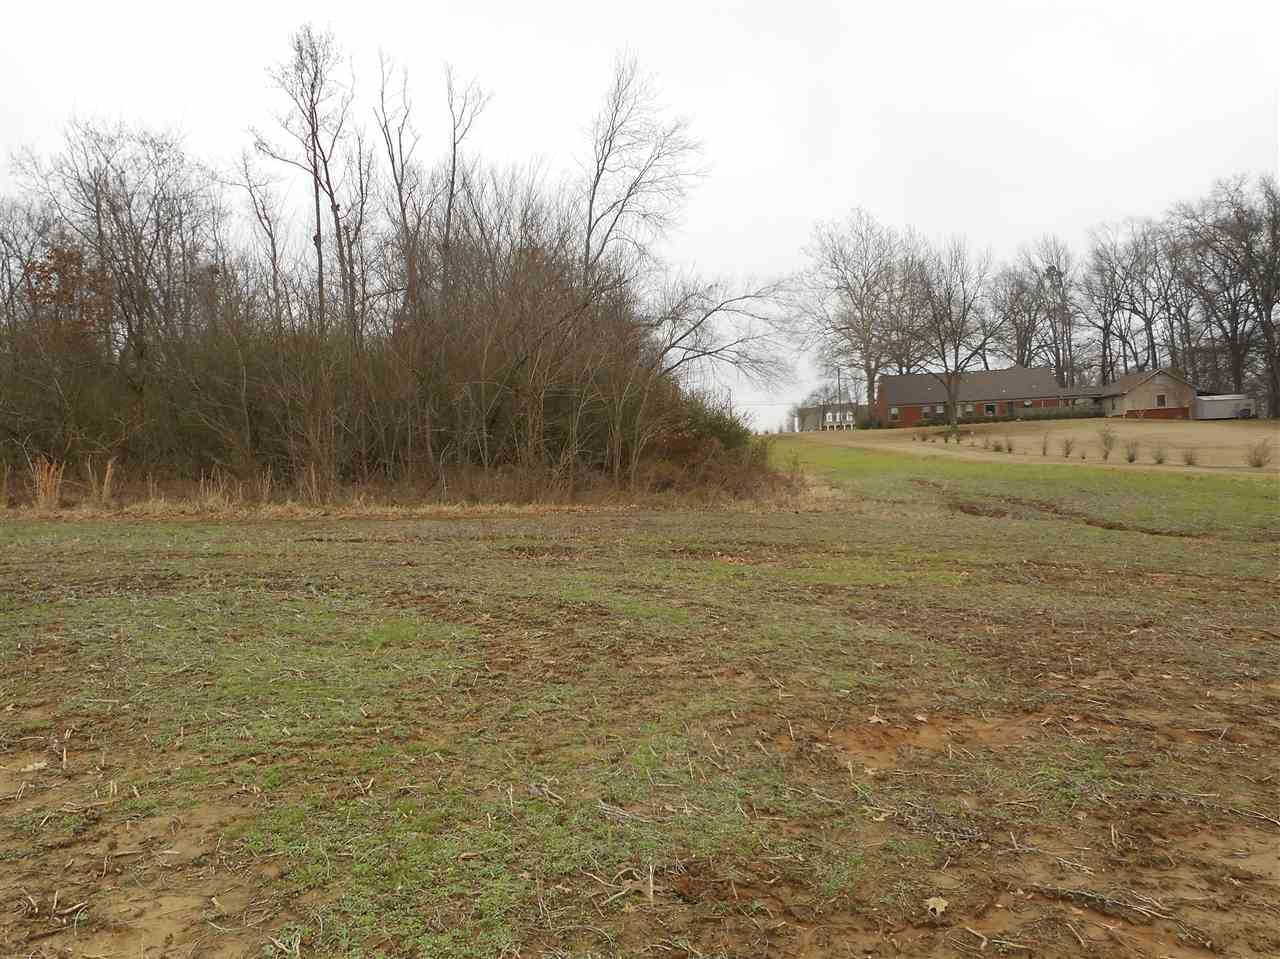 LOT 3 Pleasant Ridge Millington, TN 38053 - MLS #: 9993643